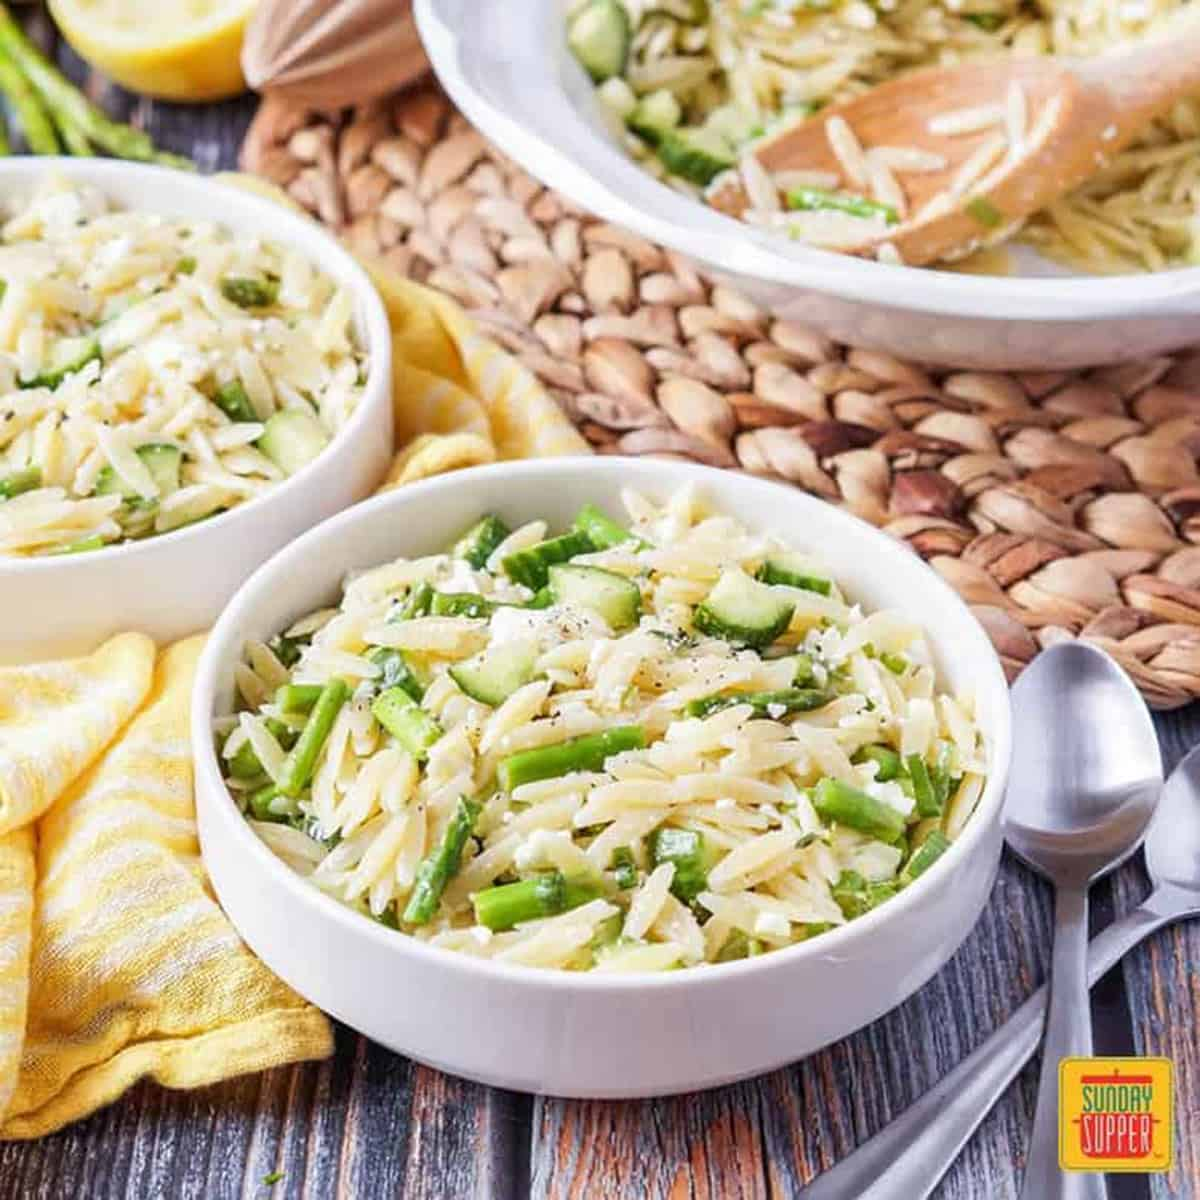 Lemon orzo pasta salad in two white bowls, with a third bowl visible in the background, with spoons on the side to eat